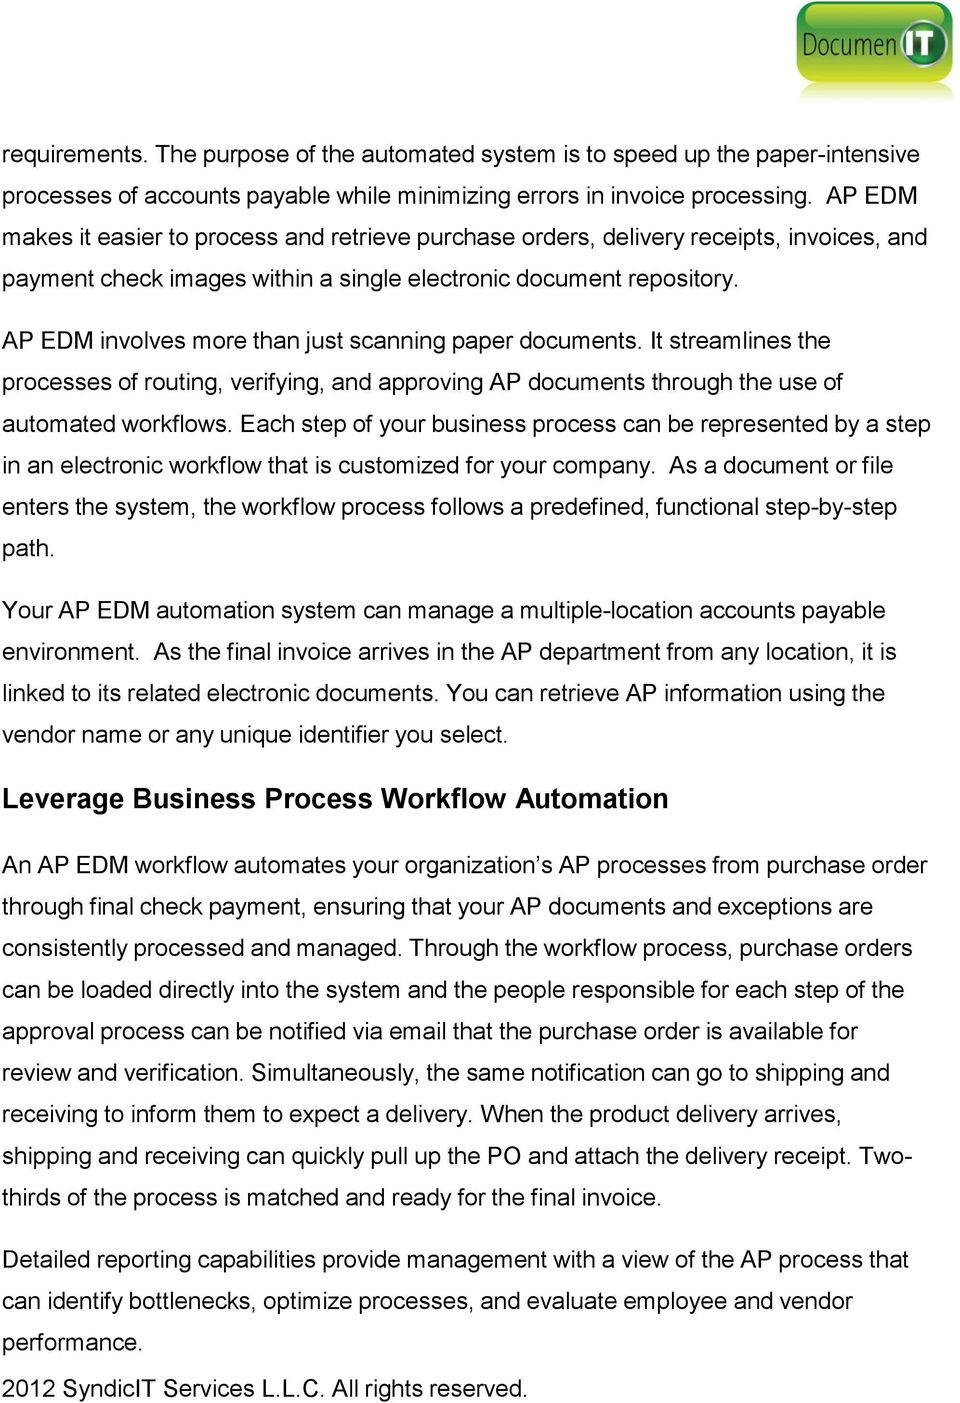 AP EDM involves more than just scanning paper documents. It streamlines the processes of routing, verifying, and approving AP documents through the use of automated workflows.